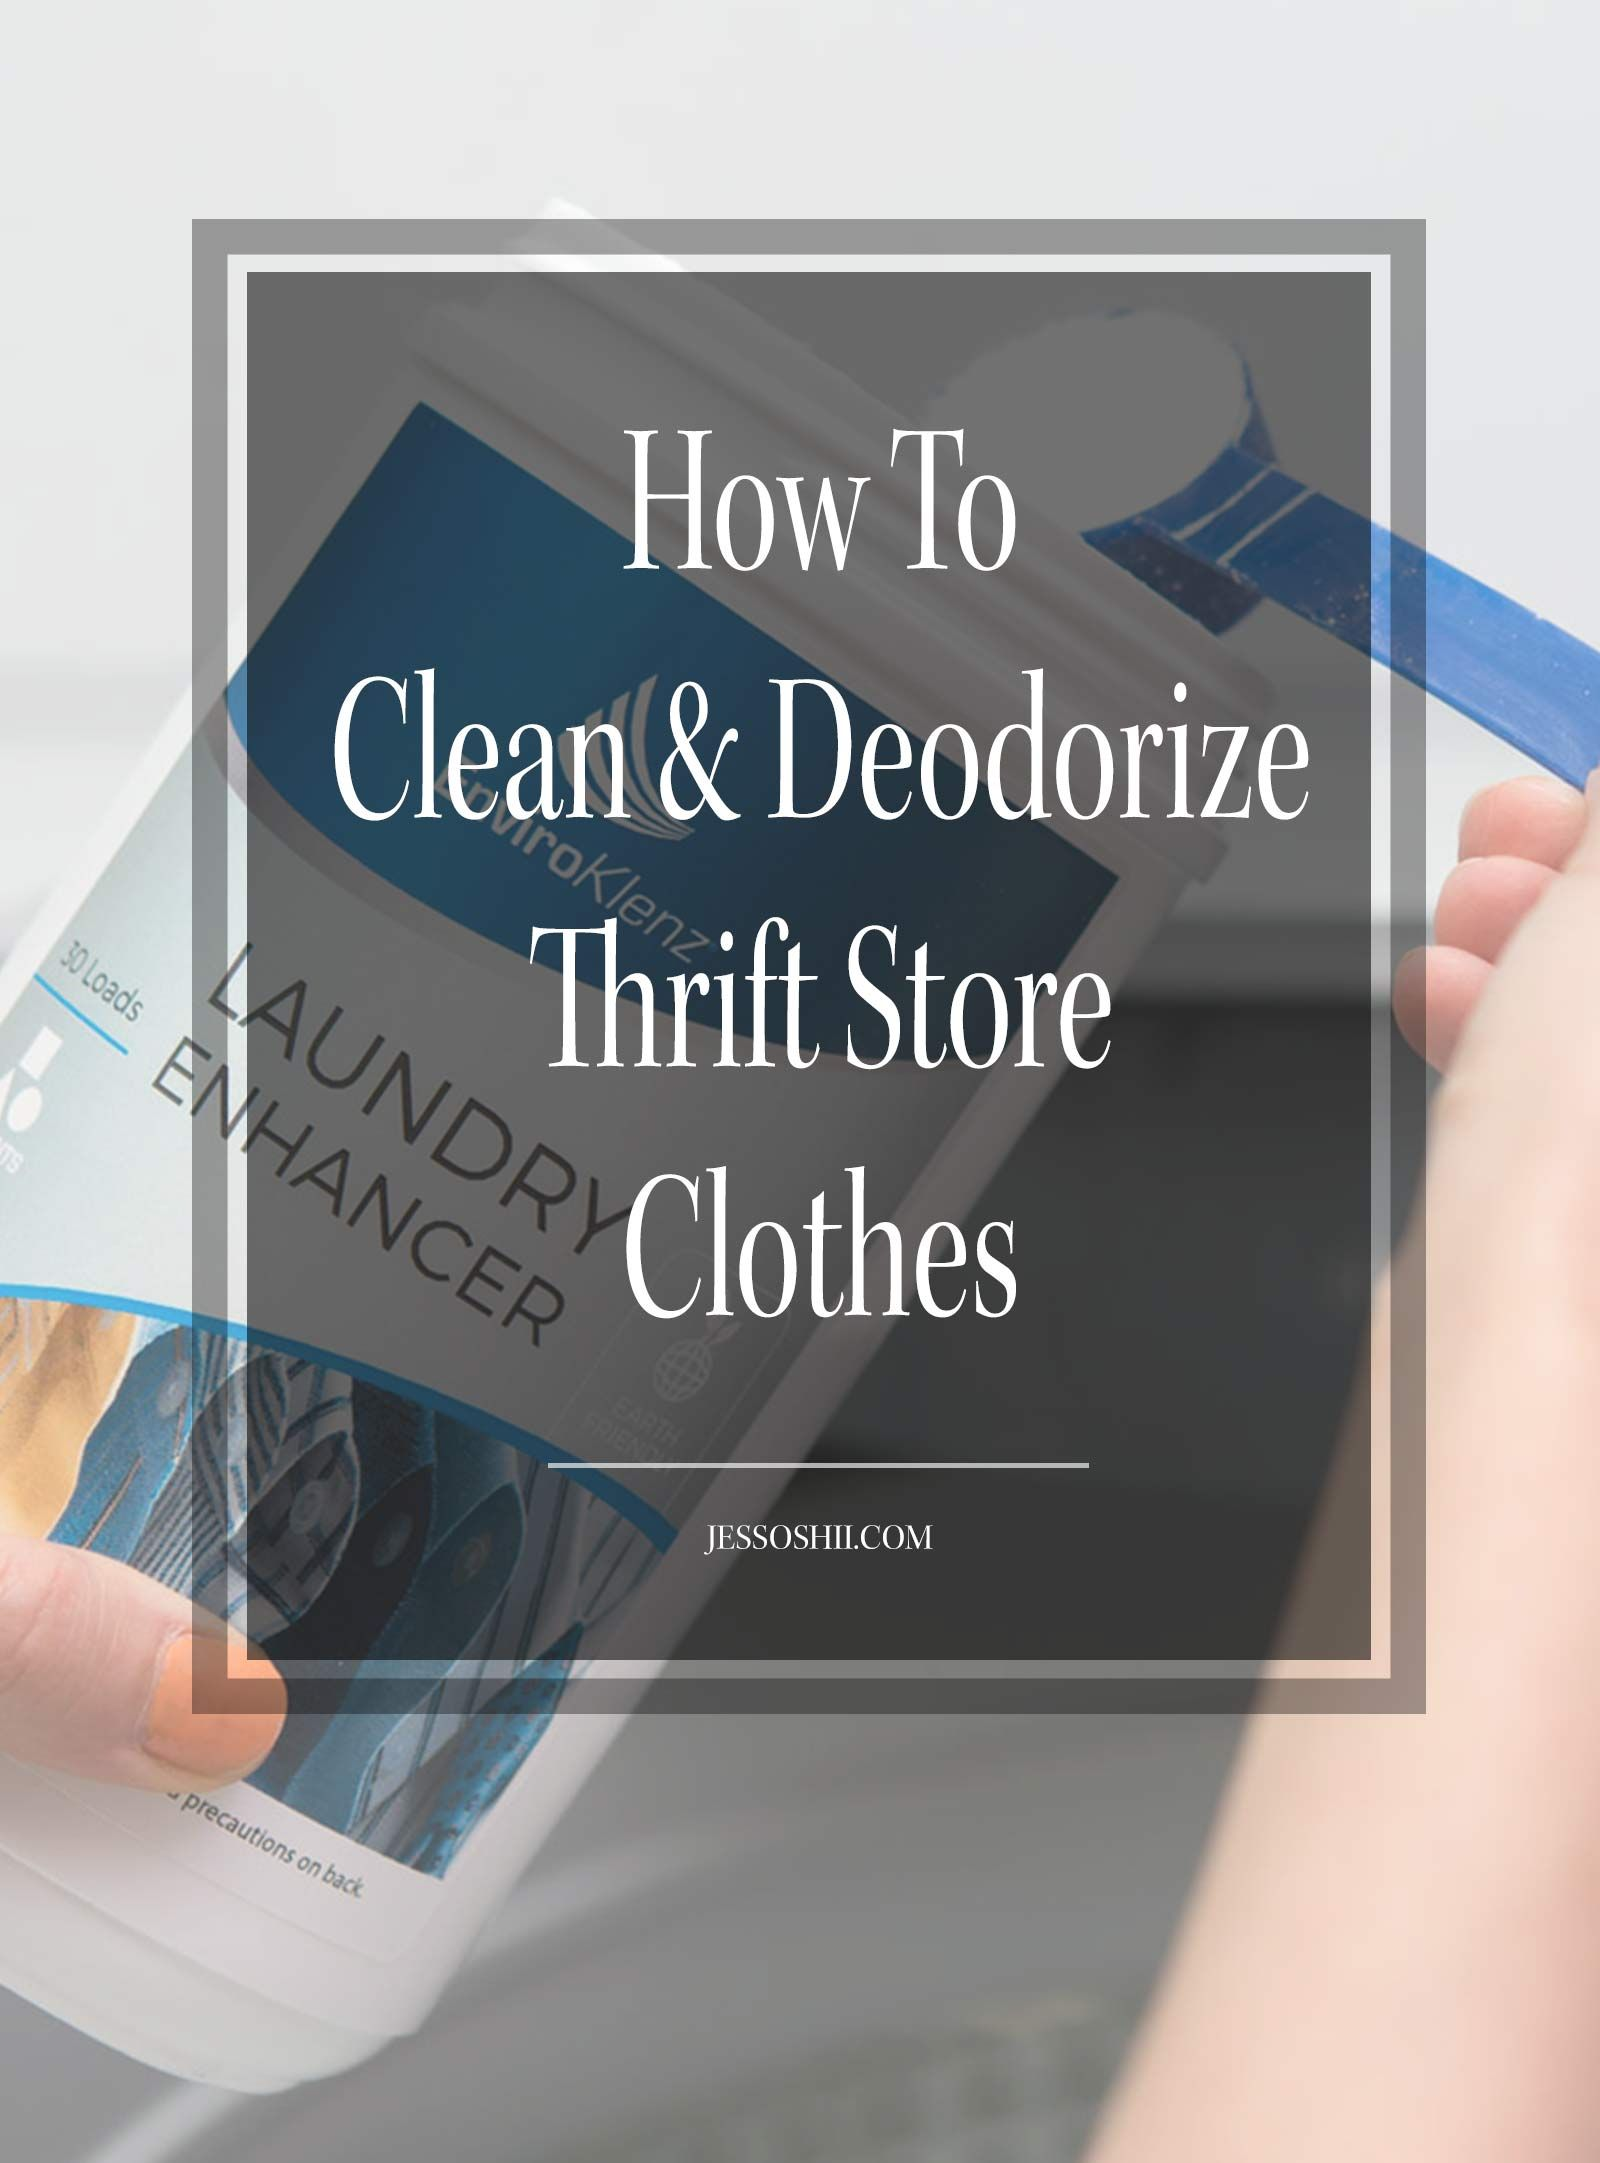 How To Clean Deodorize Thrift Store Clothes Jessoshii Odor Clothes Second Hand Clothes Clothing Smell